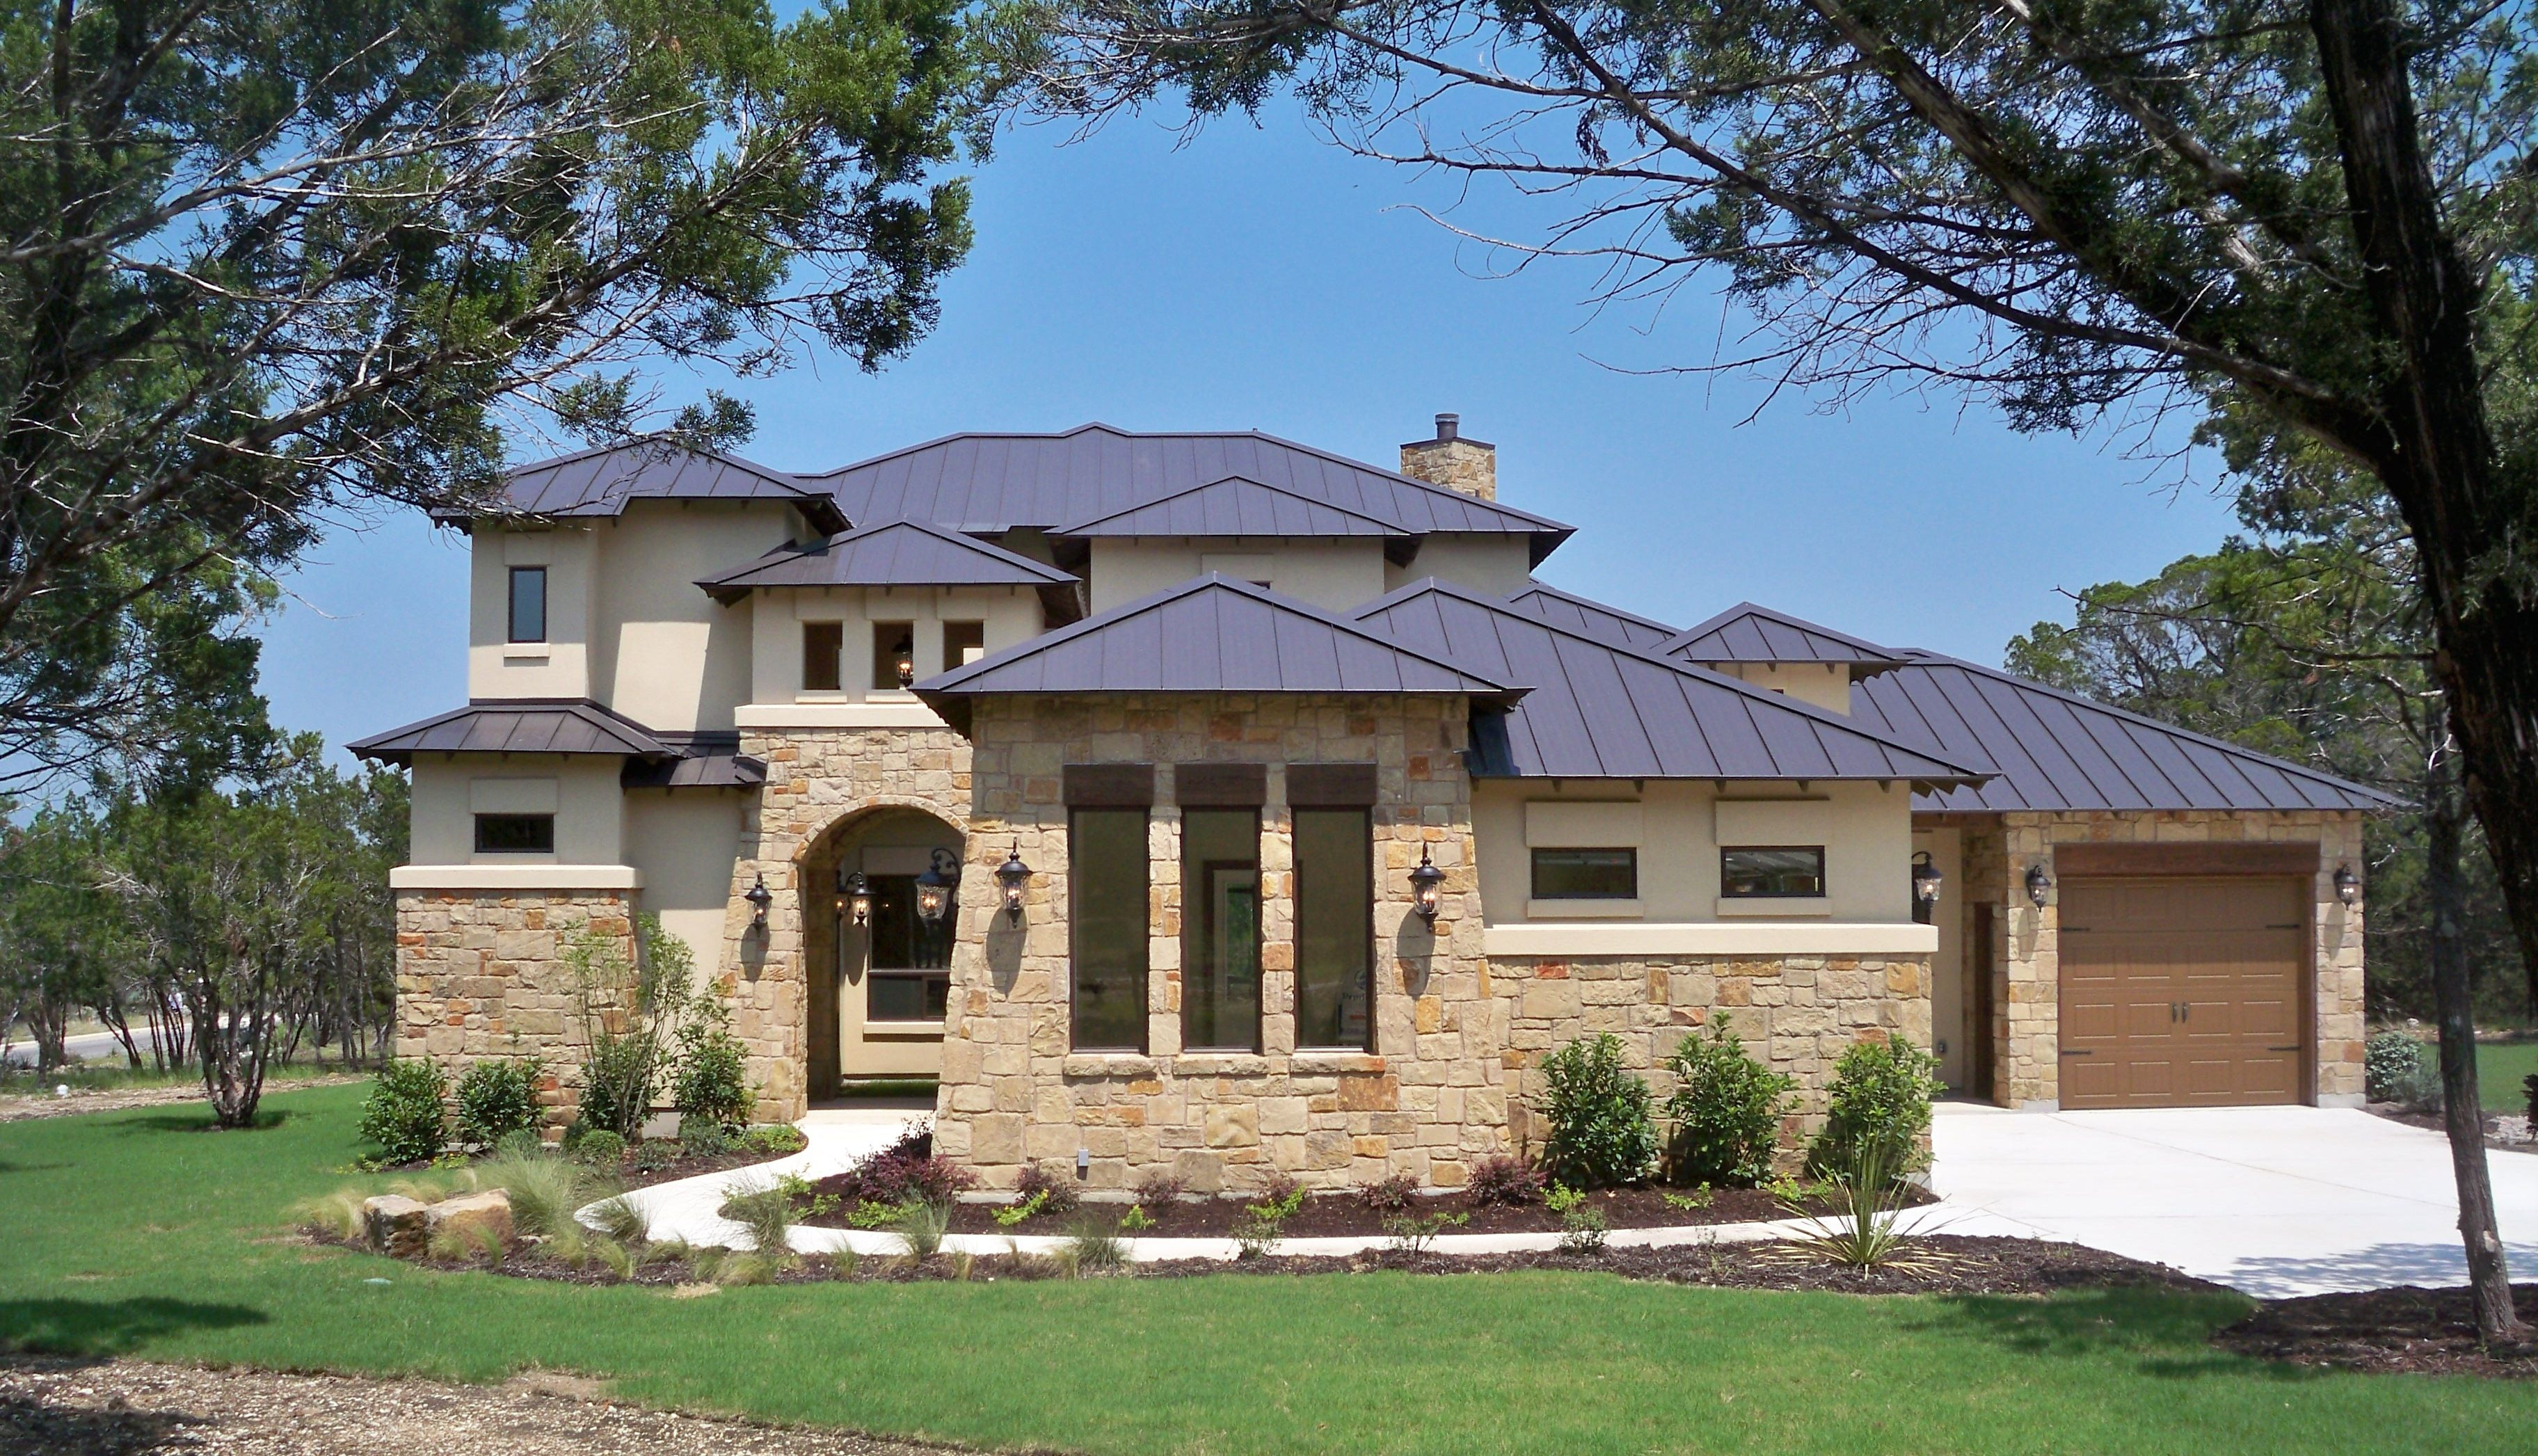 Hill Country Style Tumbled Stone Exteriors Hill Country Luxury Hill Country Homes Country Home Exteriors French Country Houses Exterior